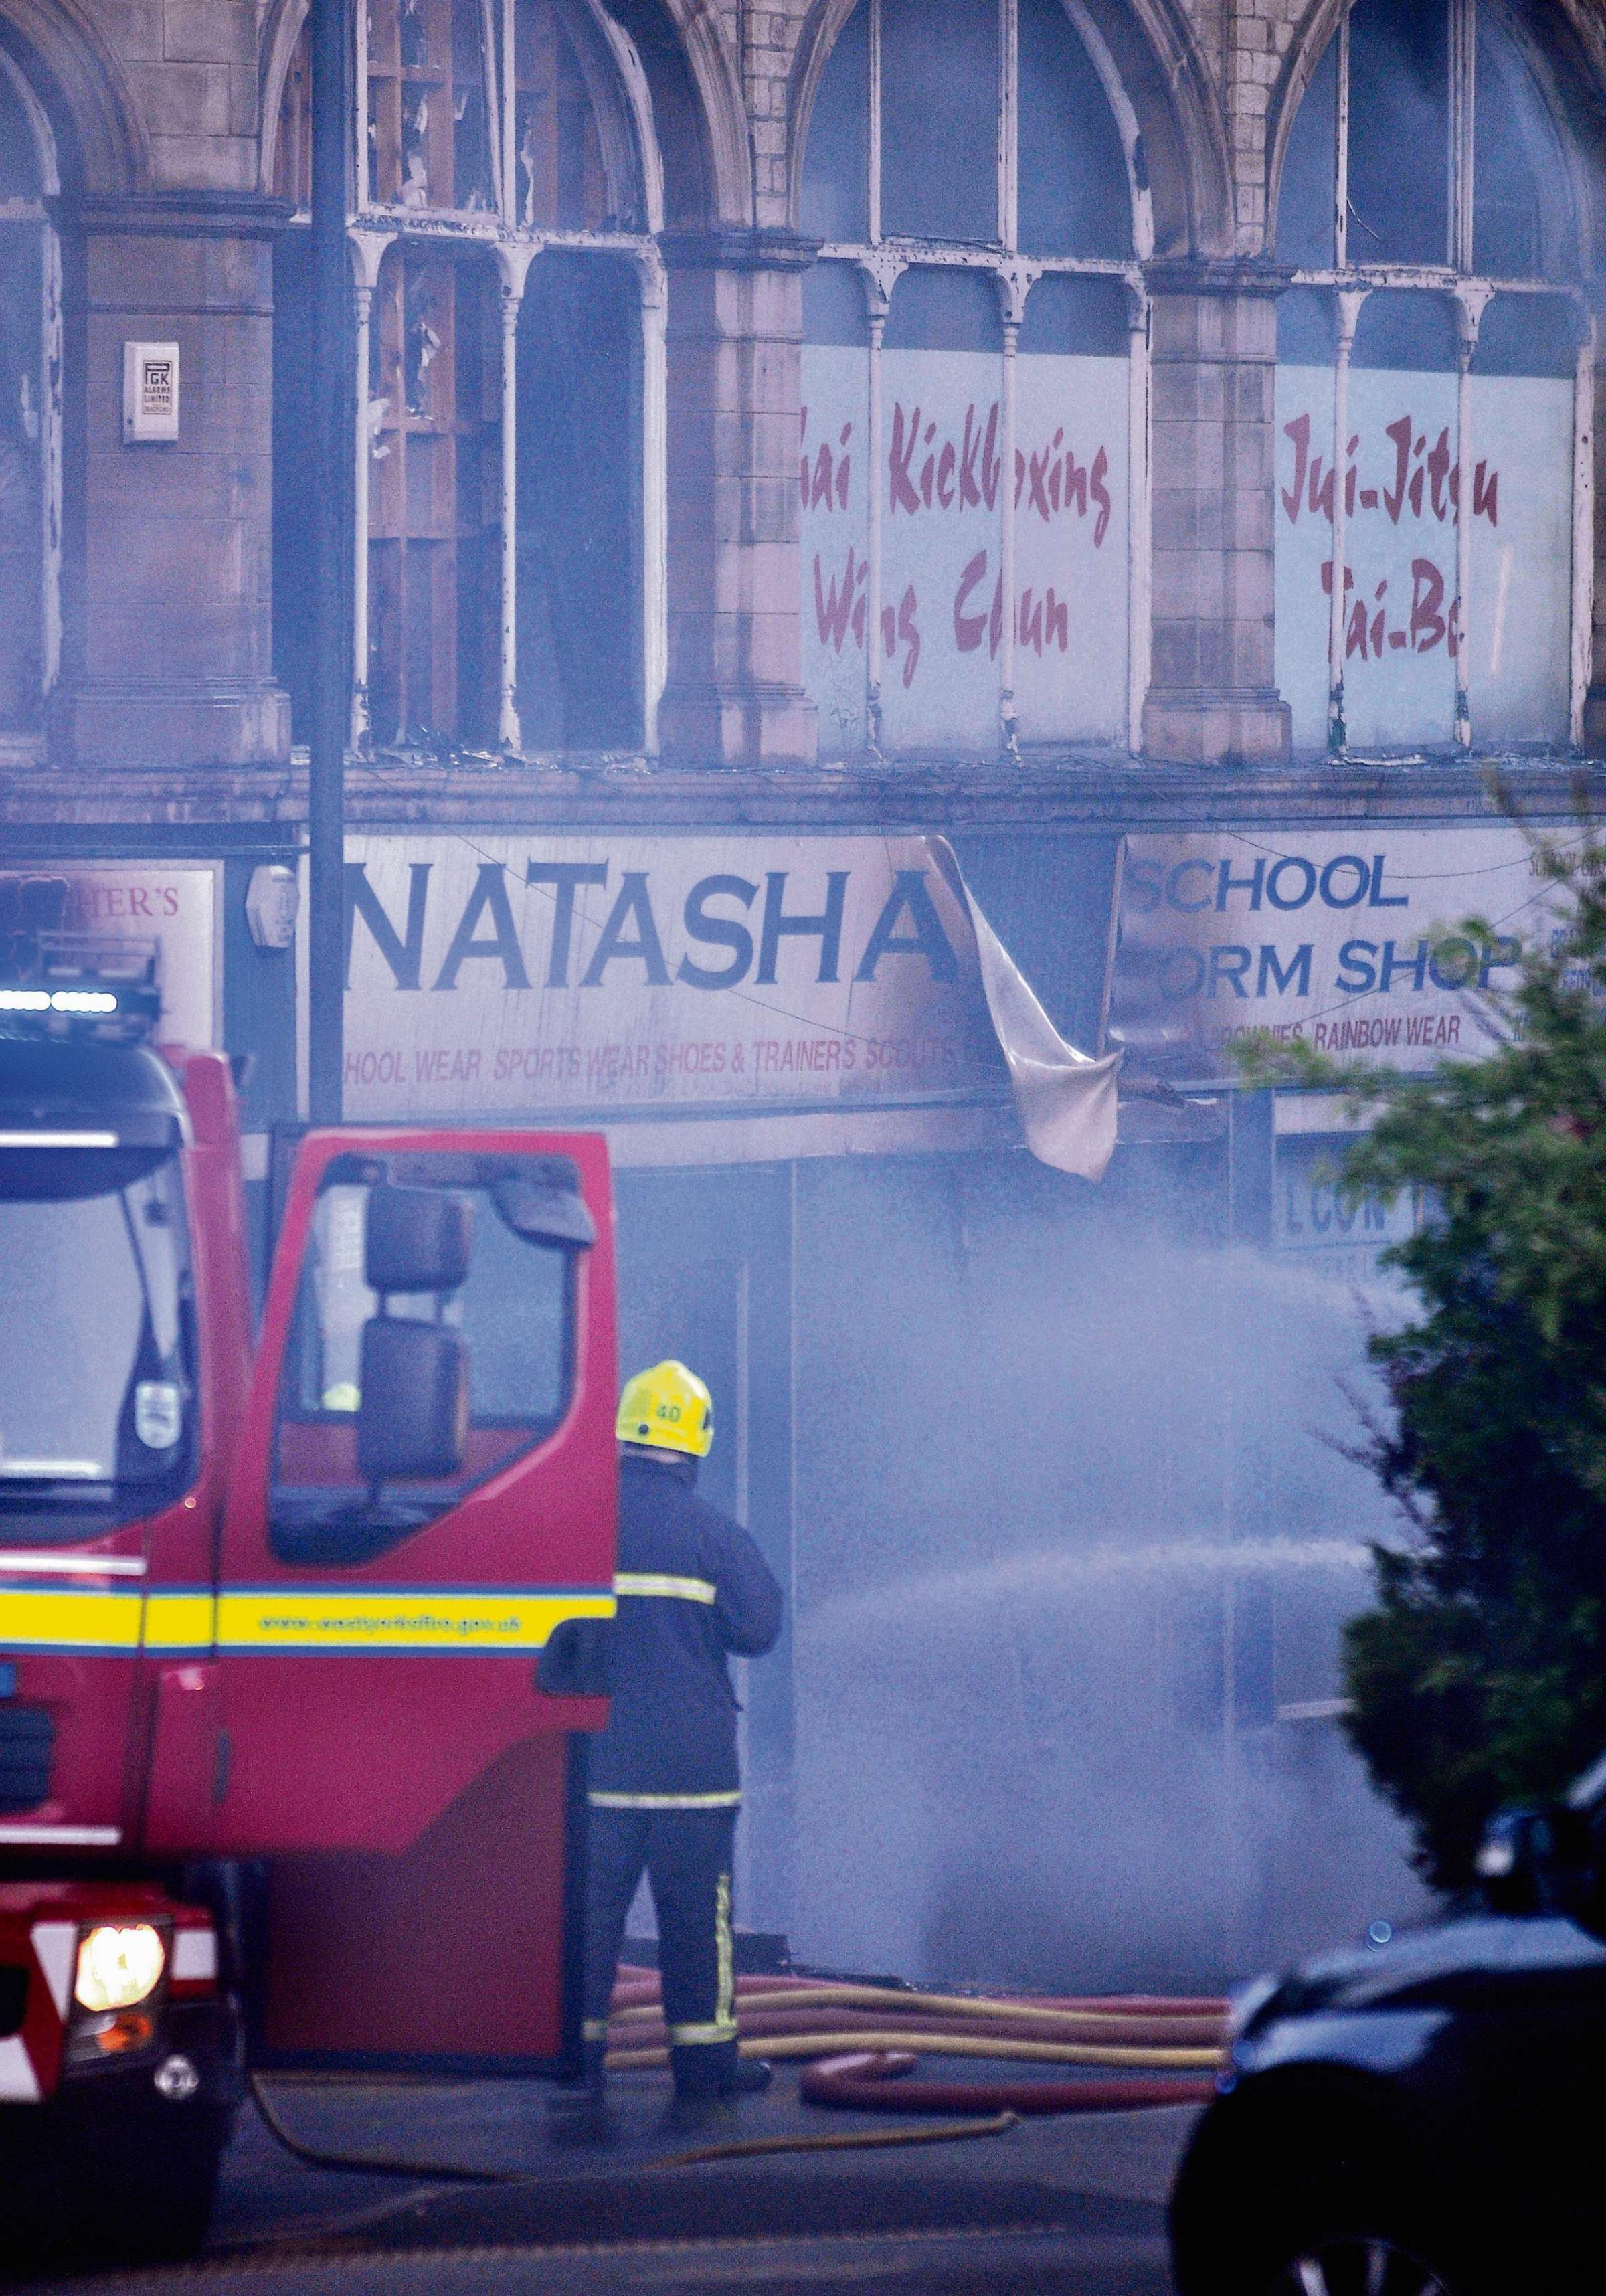 New city centre restaurant to rise from ashes of shop blaze